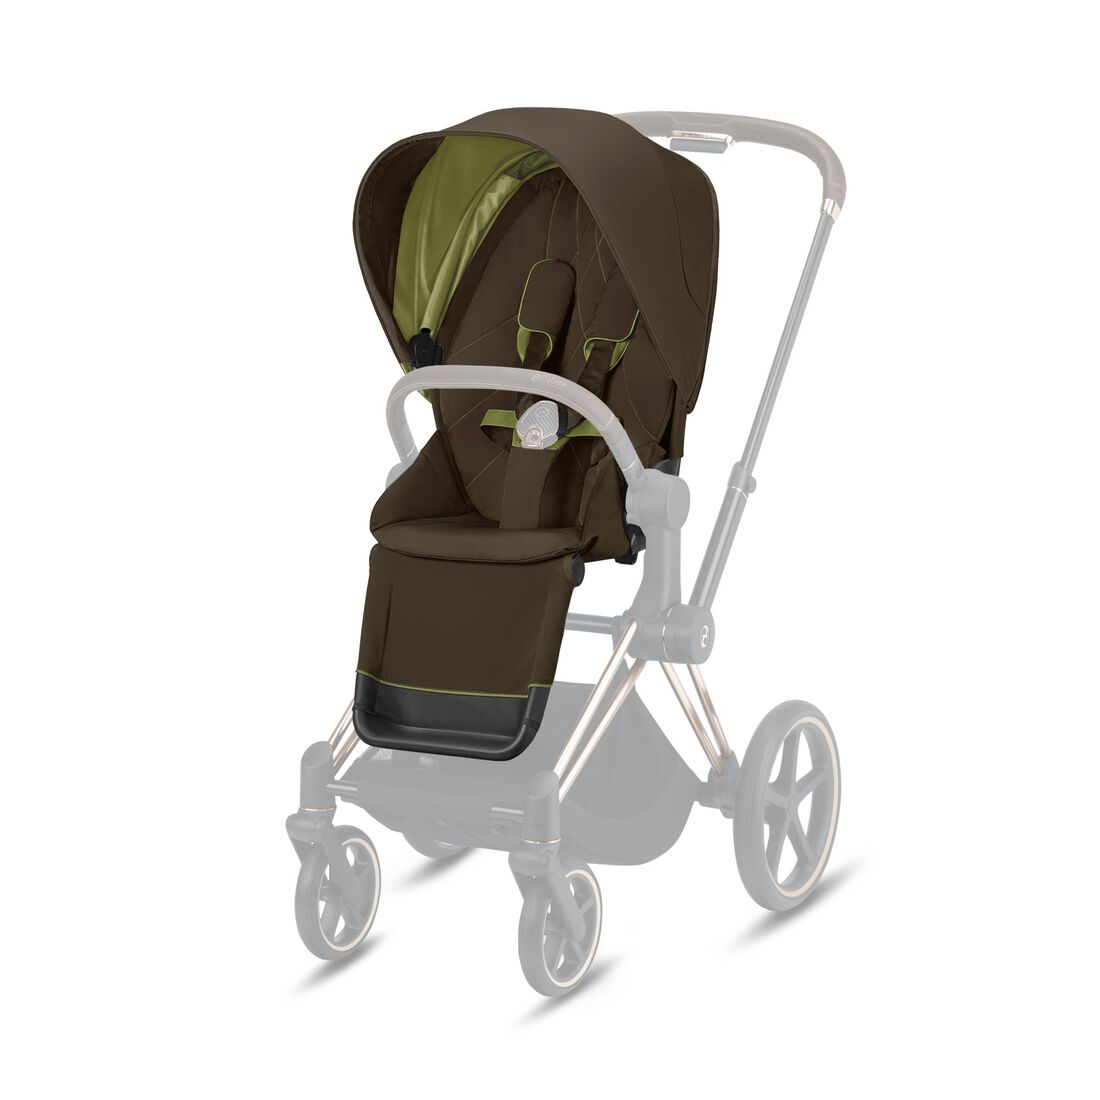 CYBEX Priam Sitzpaket - Khaki Green in Khaki Green large Bild 1